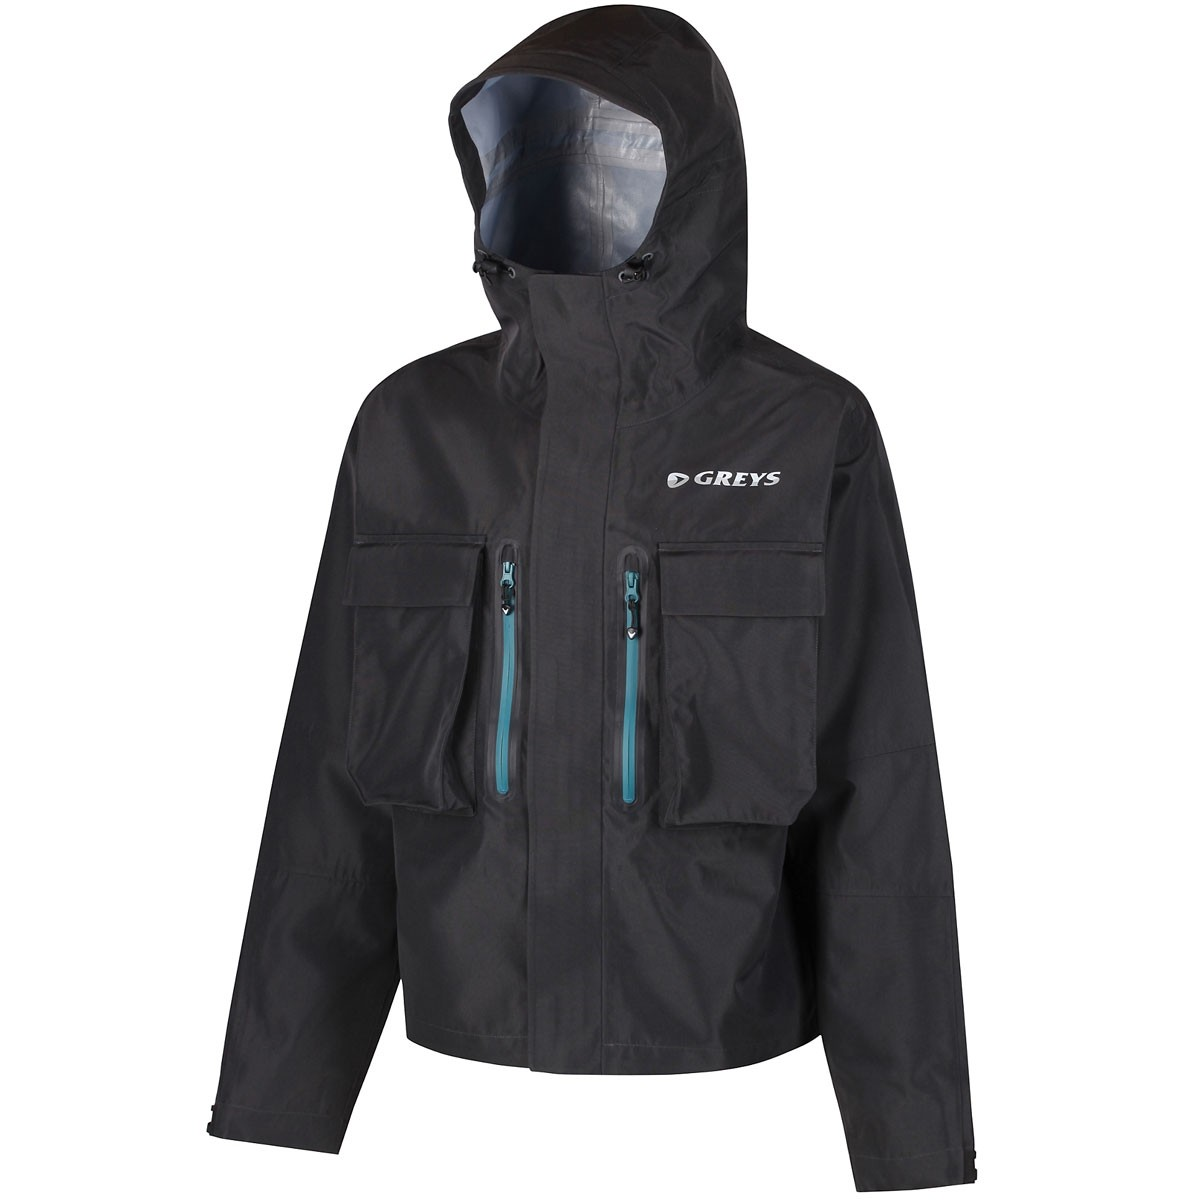 GREYS - Cold Weather Wading Jacket